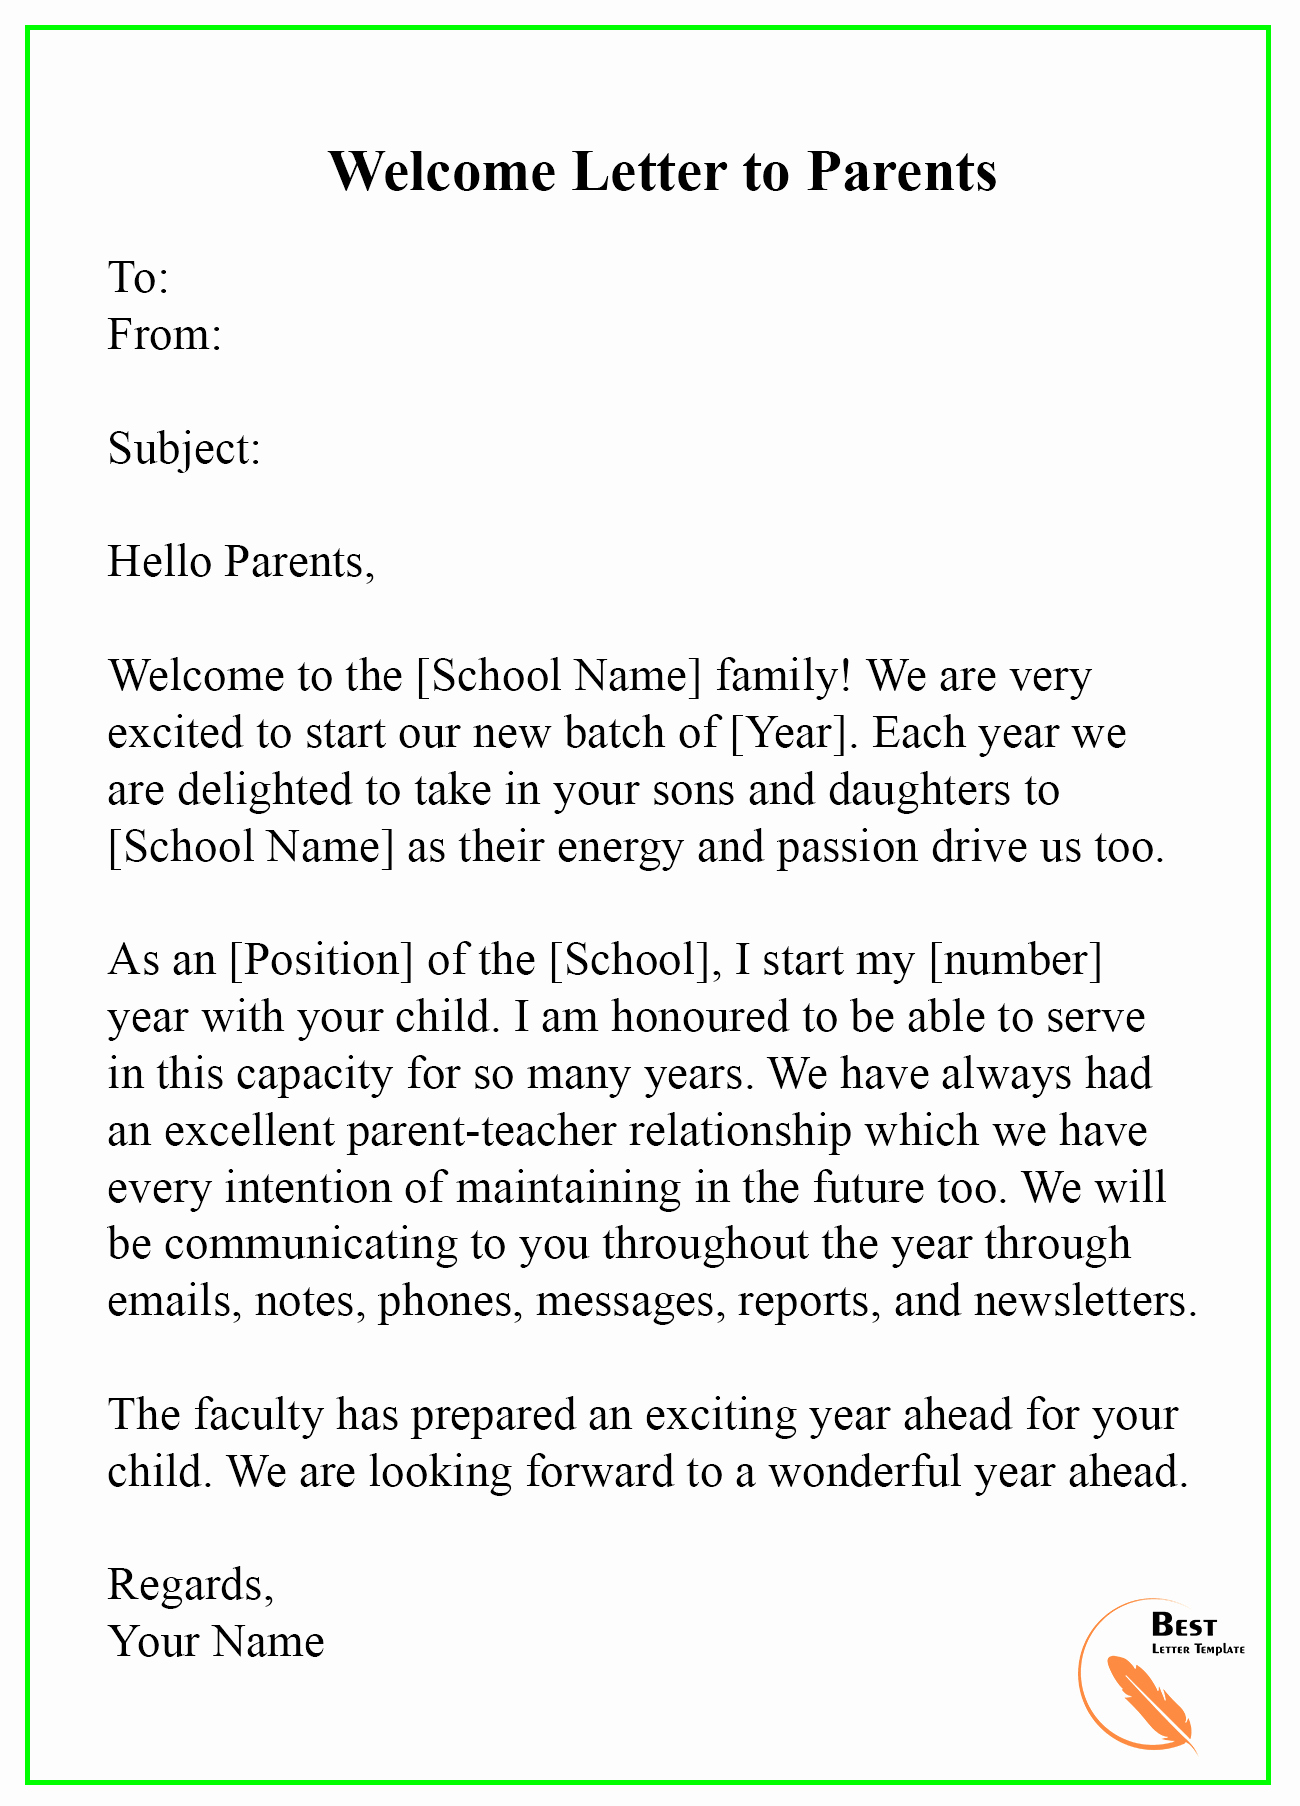 Letter to Parents Template Beautiful Wel E Letter Template – format Sample & Example